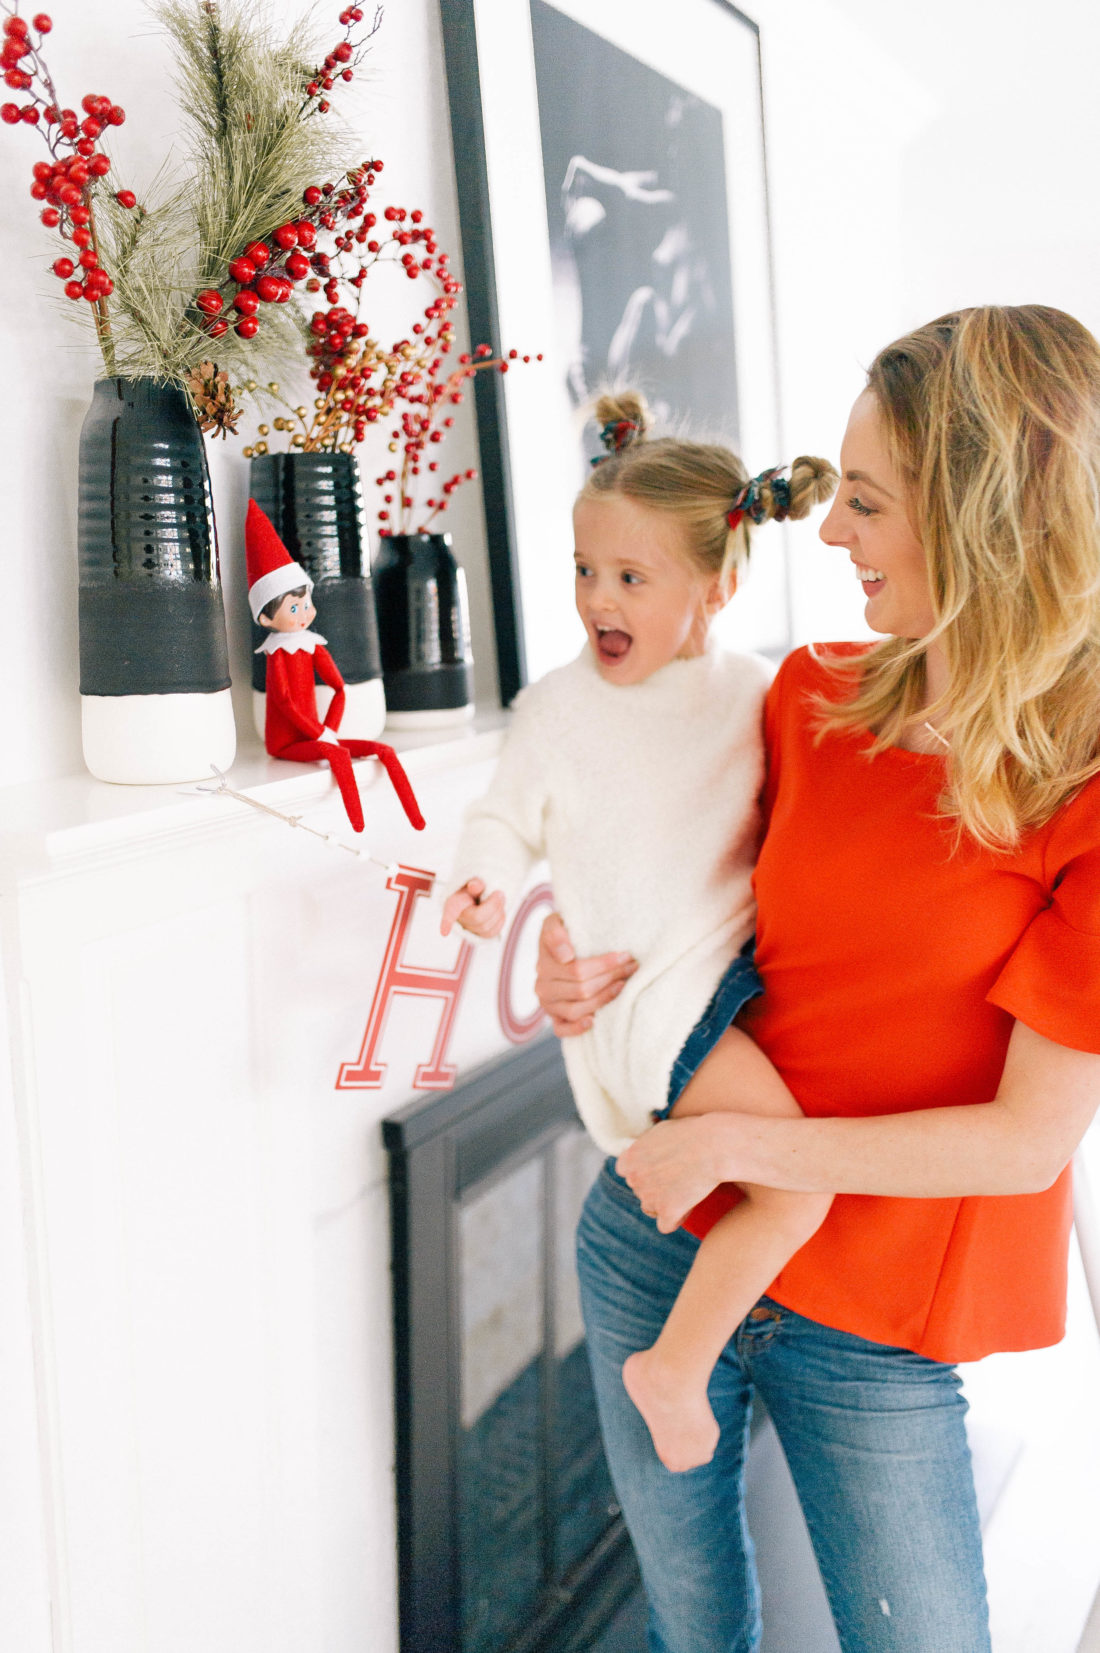 Eva Amurri Martino introduces the Elf On The Shelf tradition to her kids